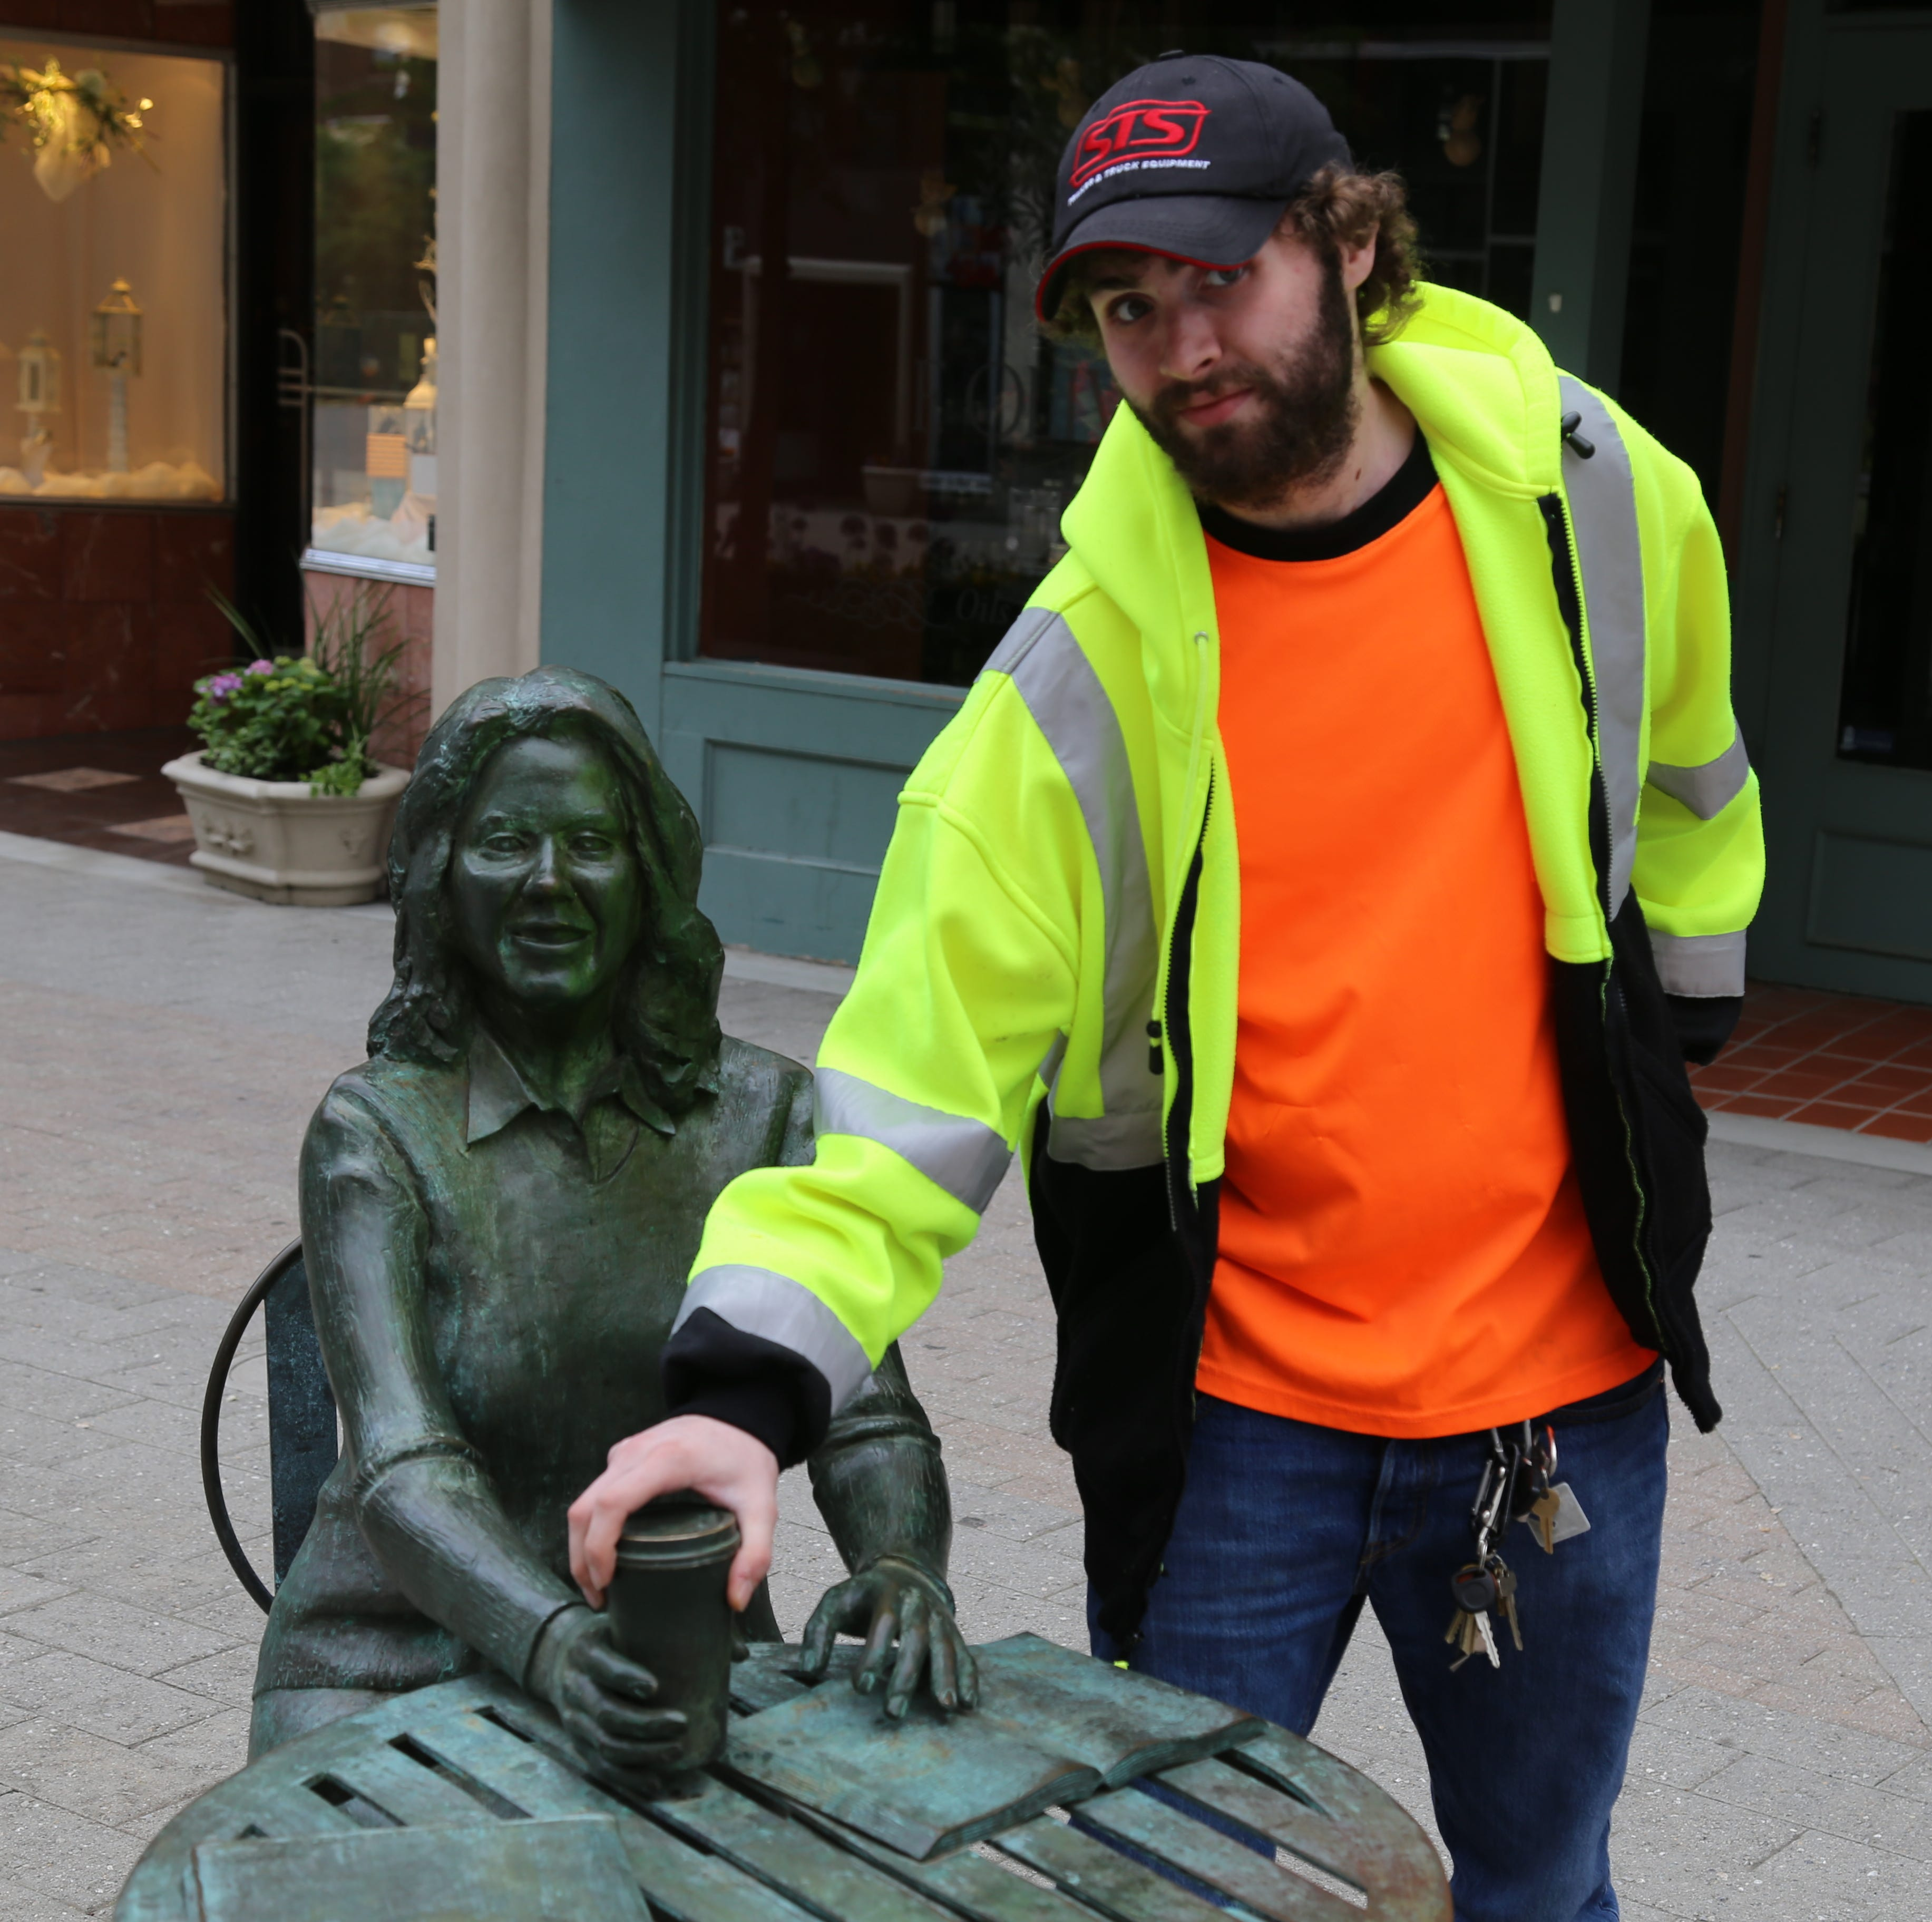 This worker thought he saw a coffee cup. It turned out to be a missing statue piece.